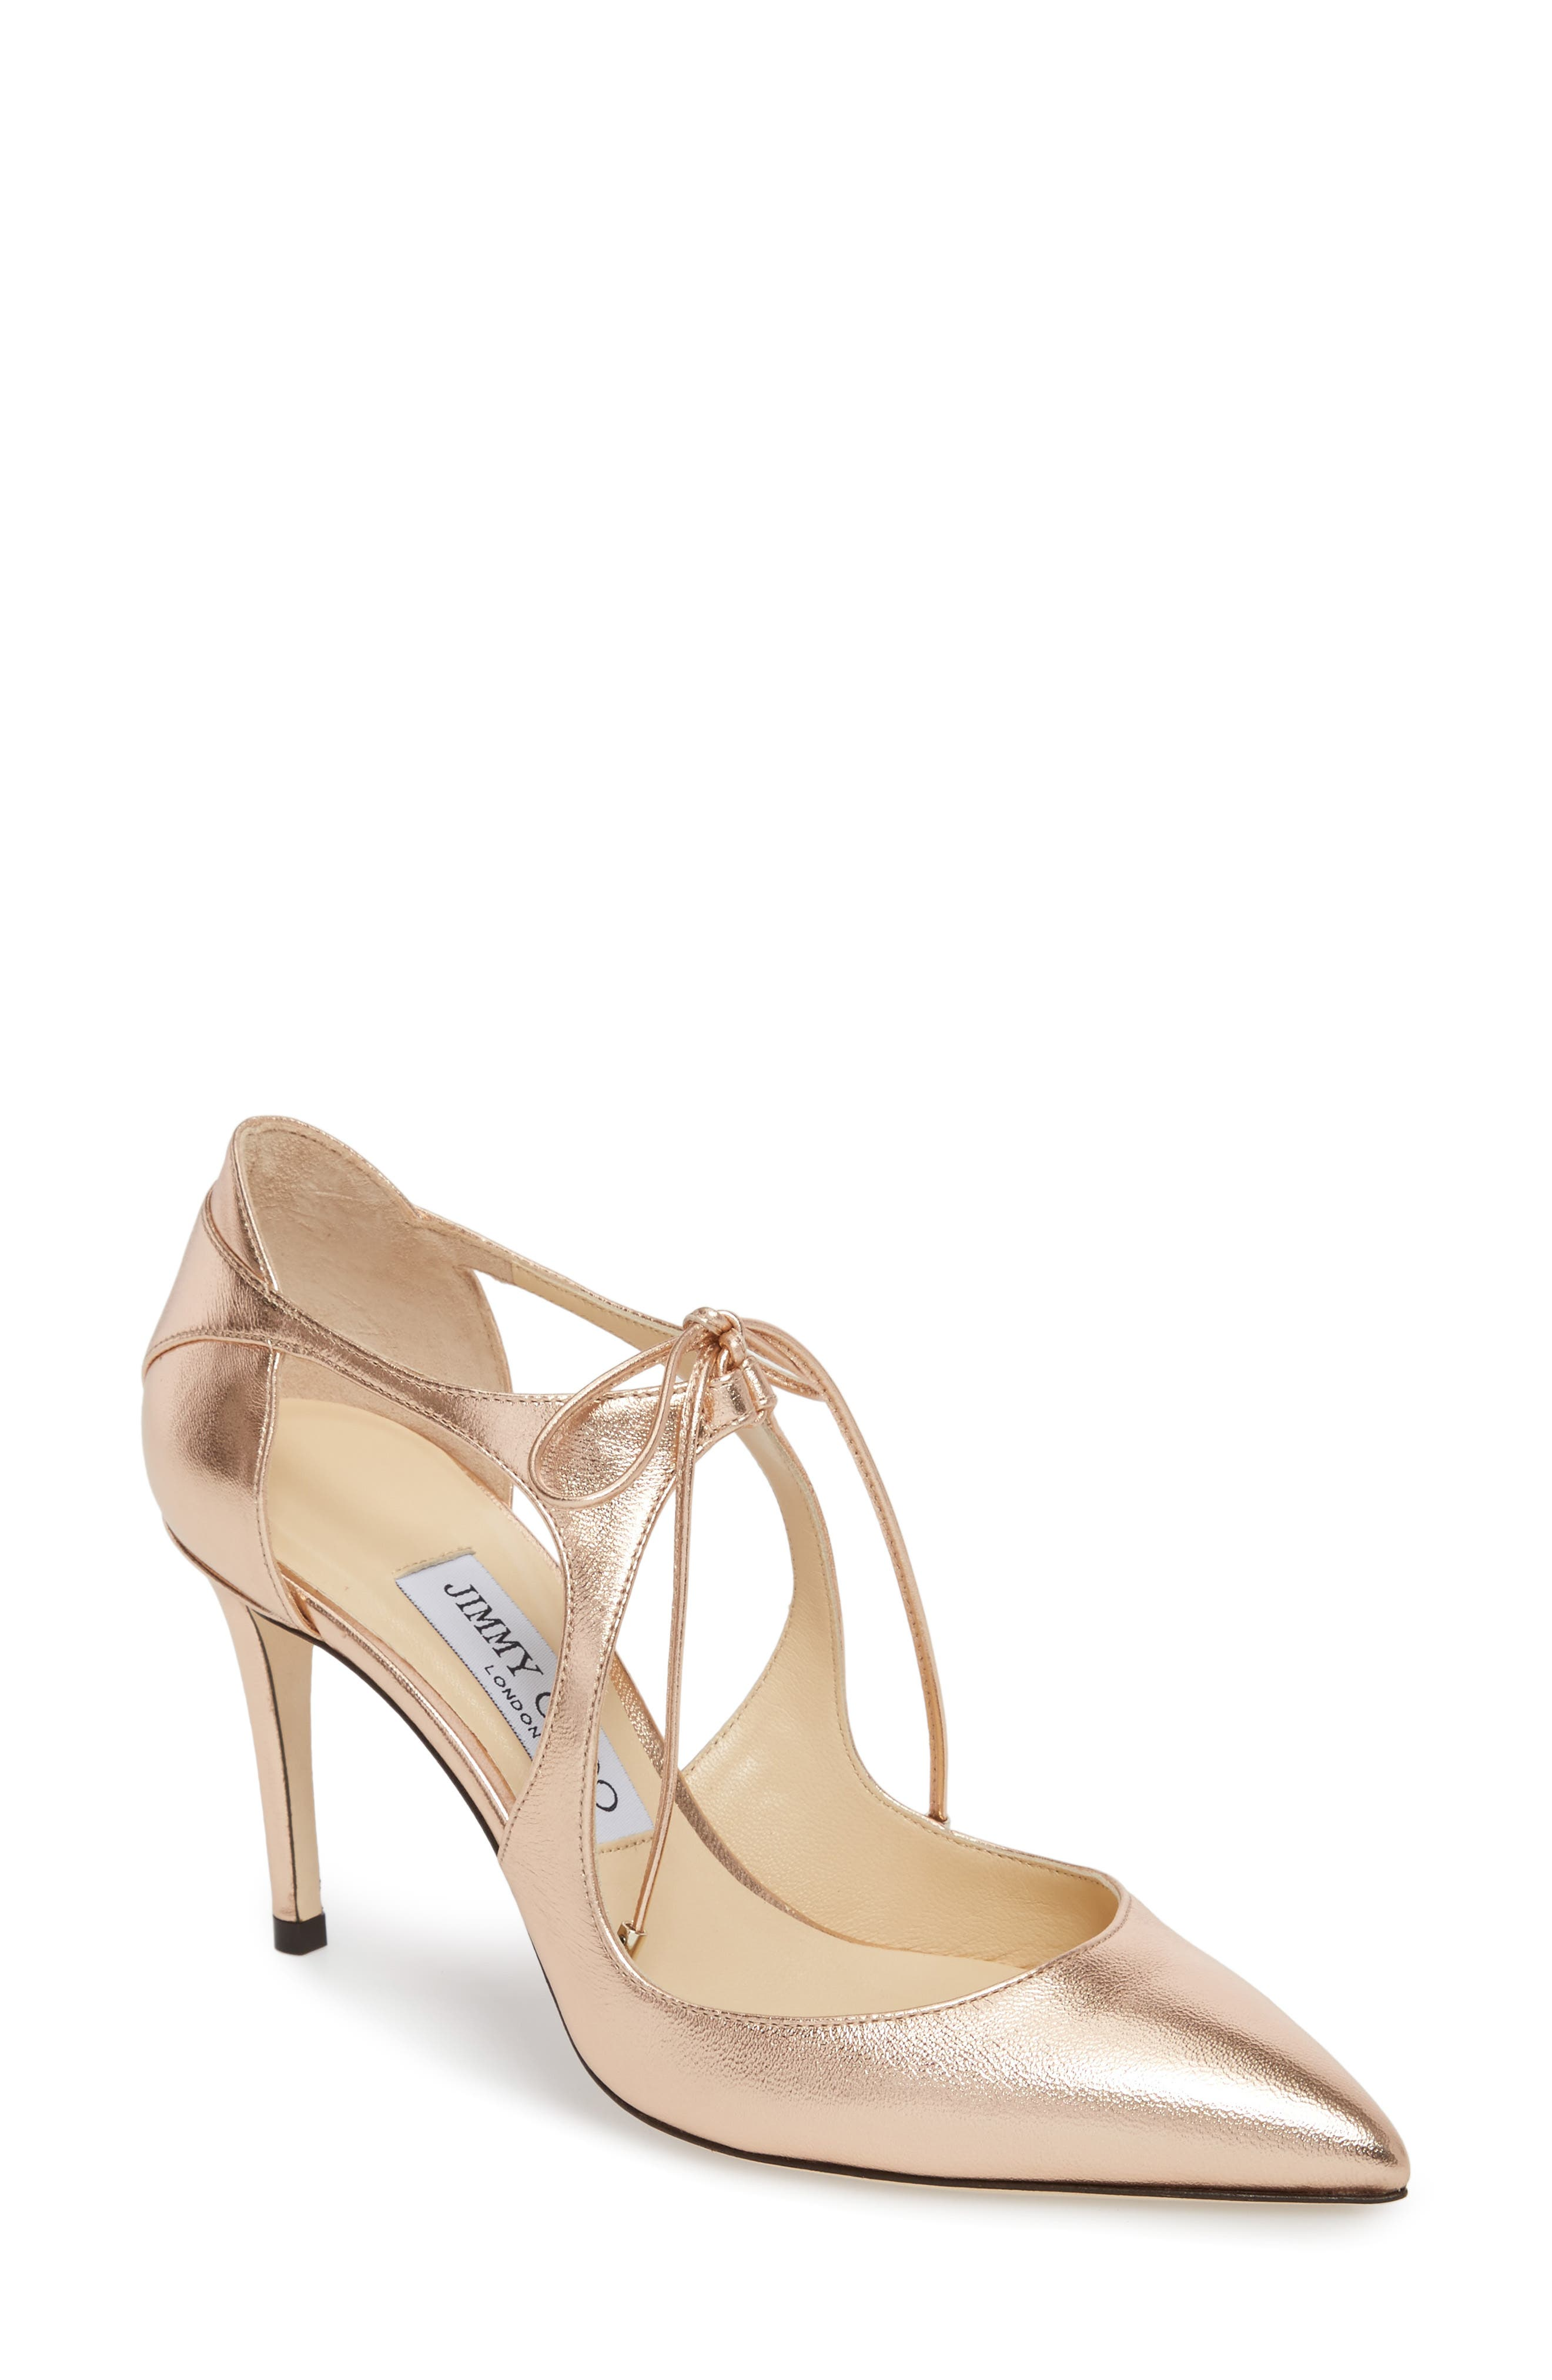 Vanessa Lace-Up Pump,                             Main thumbnail 1, color,                             680